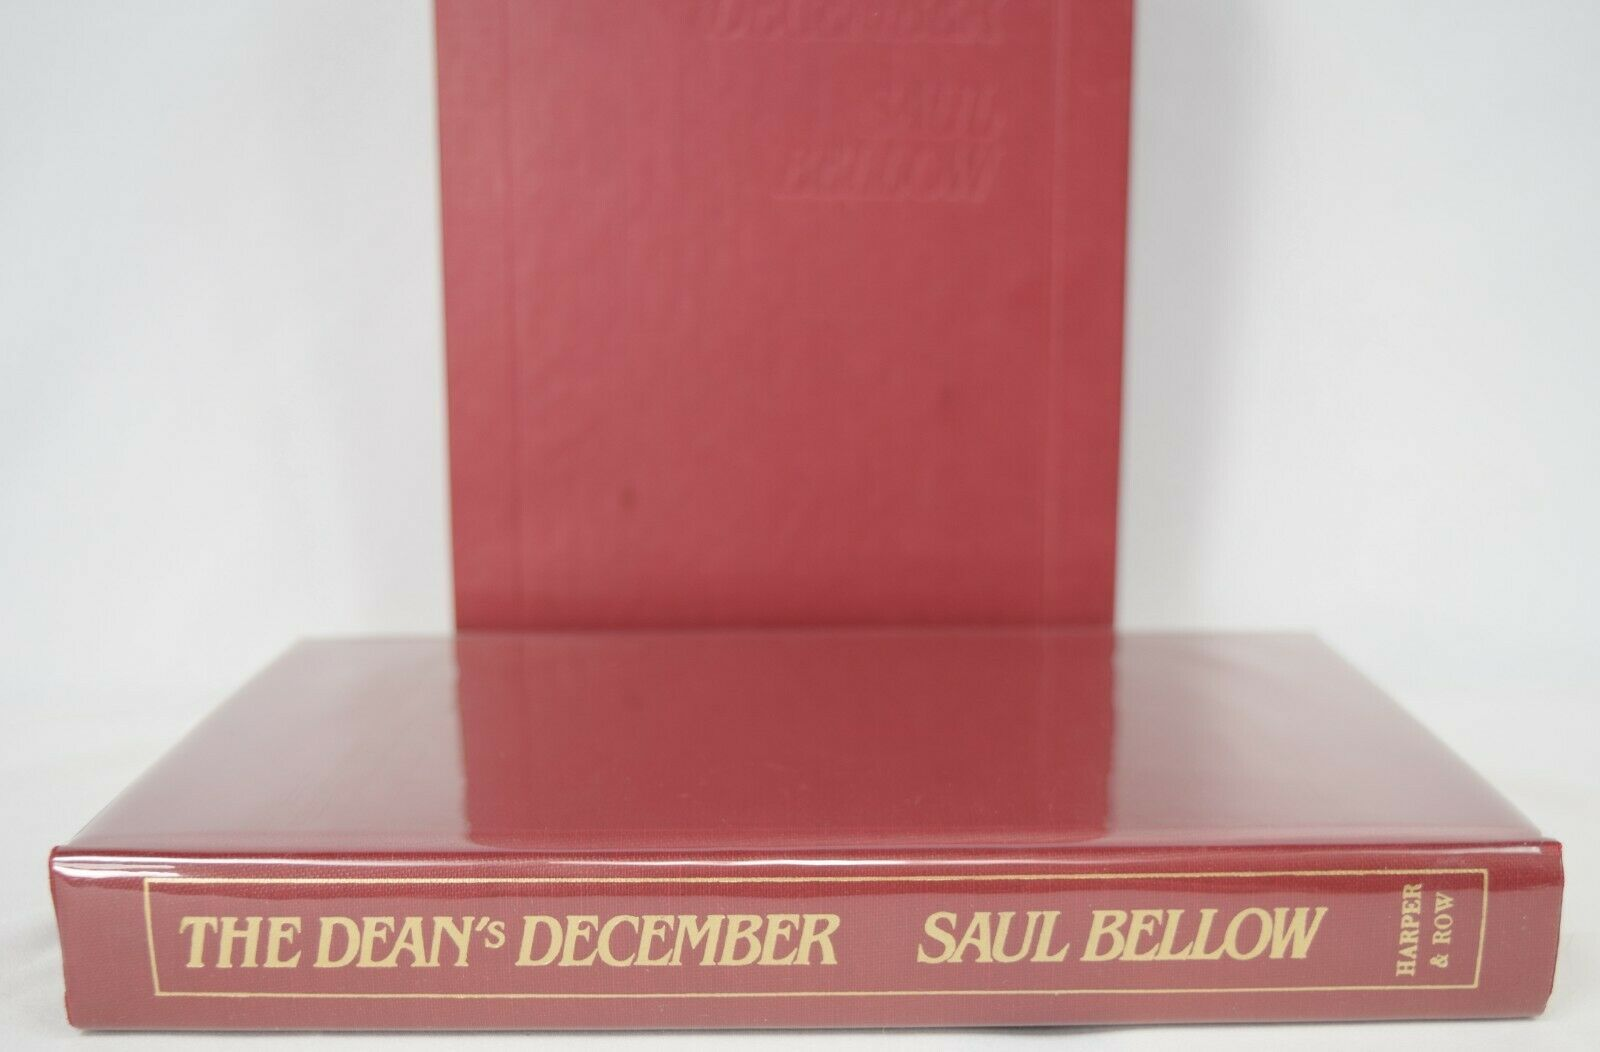 Primary image for The Dean's December (Limited Numbered Edition by Saul Bellow SIGNED, 1982) HB VG